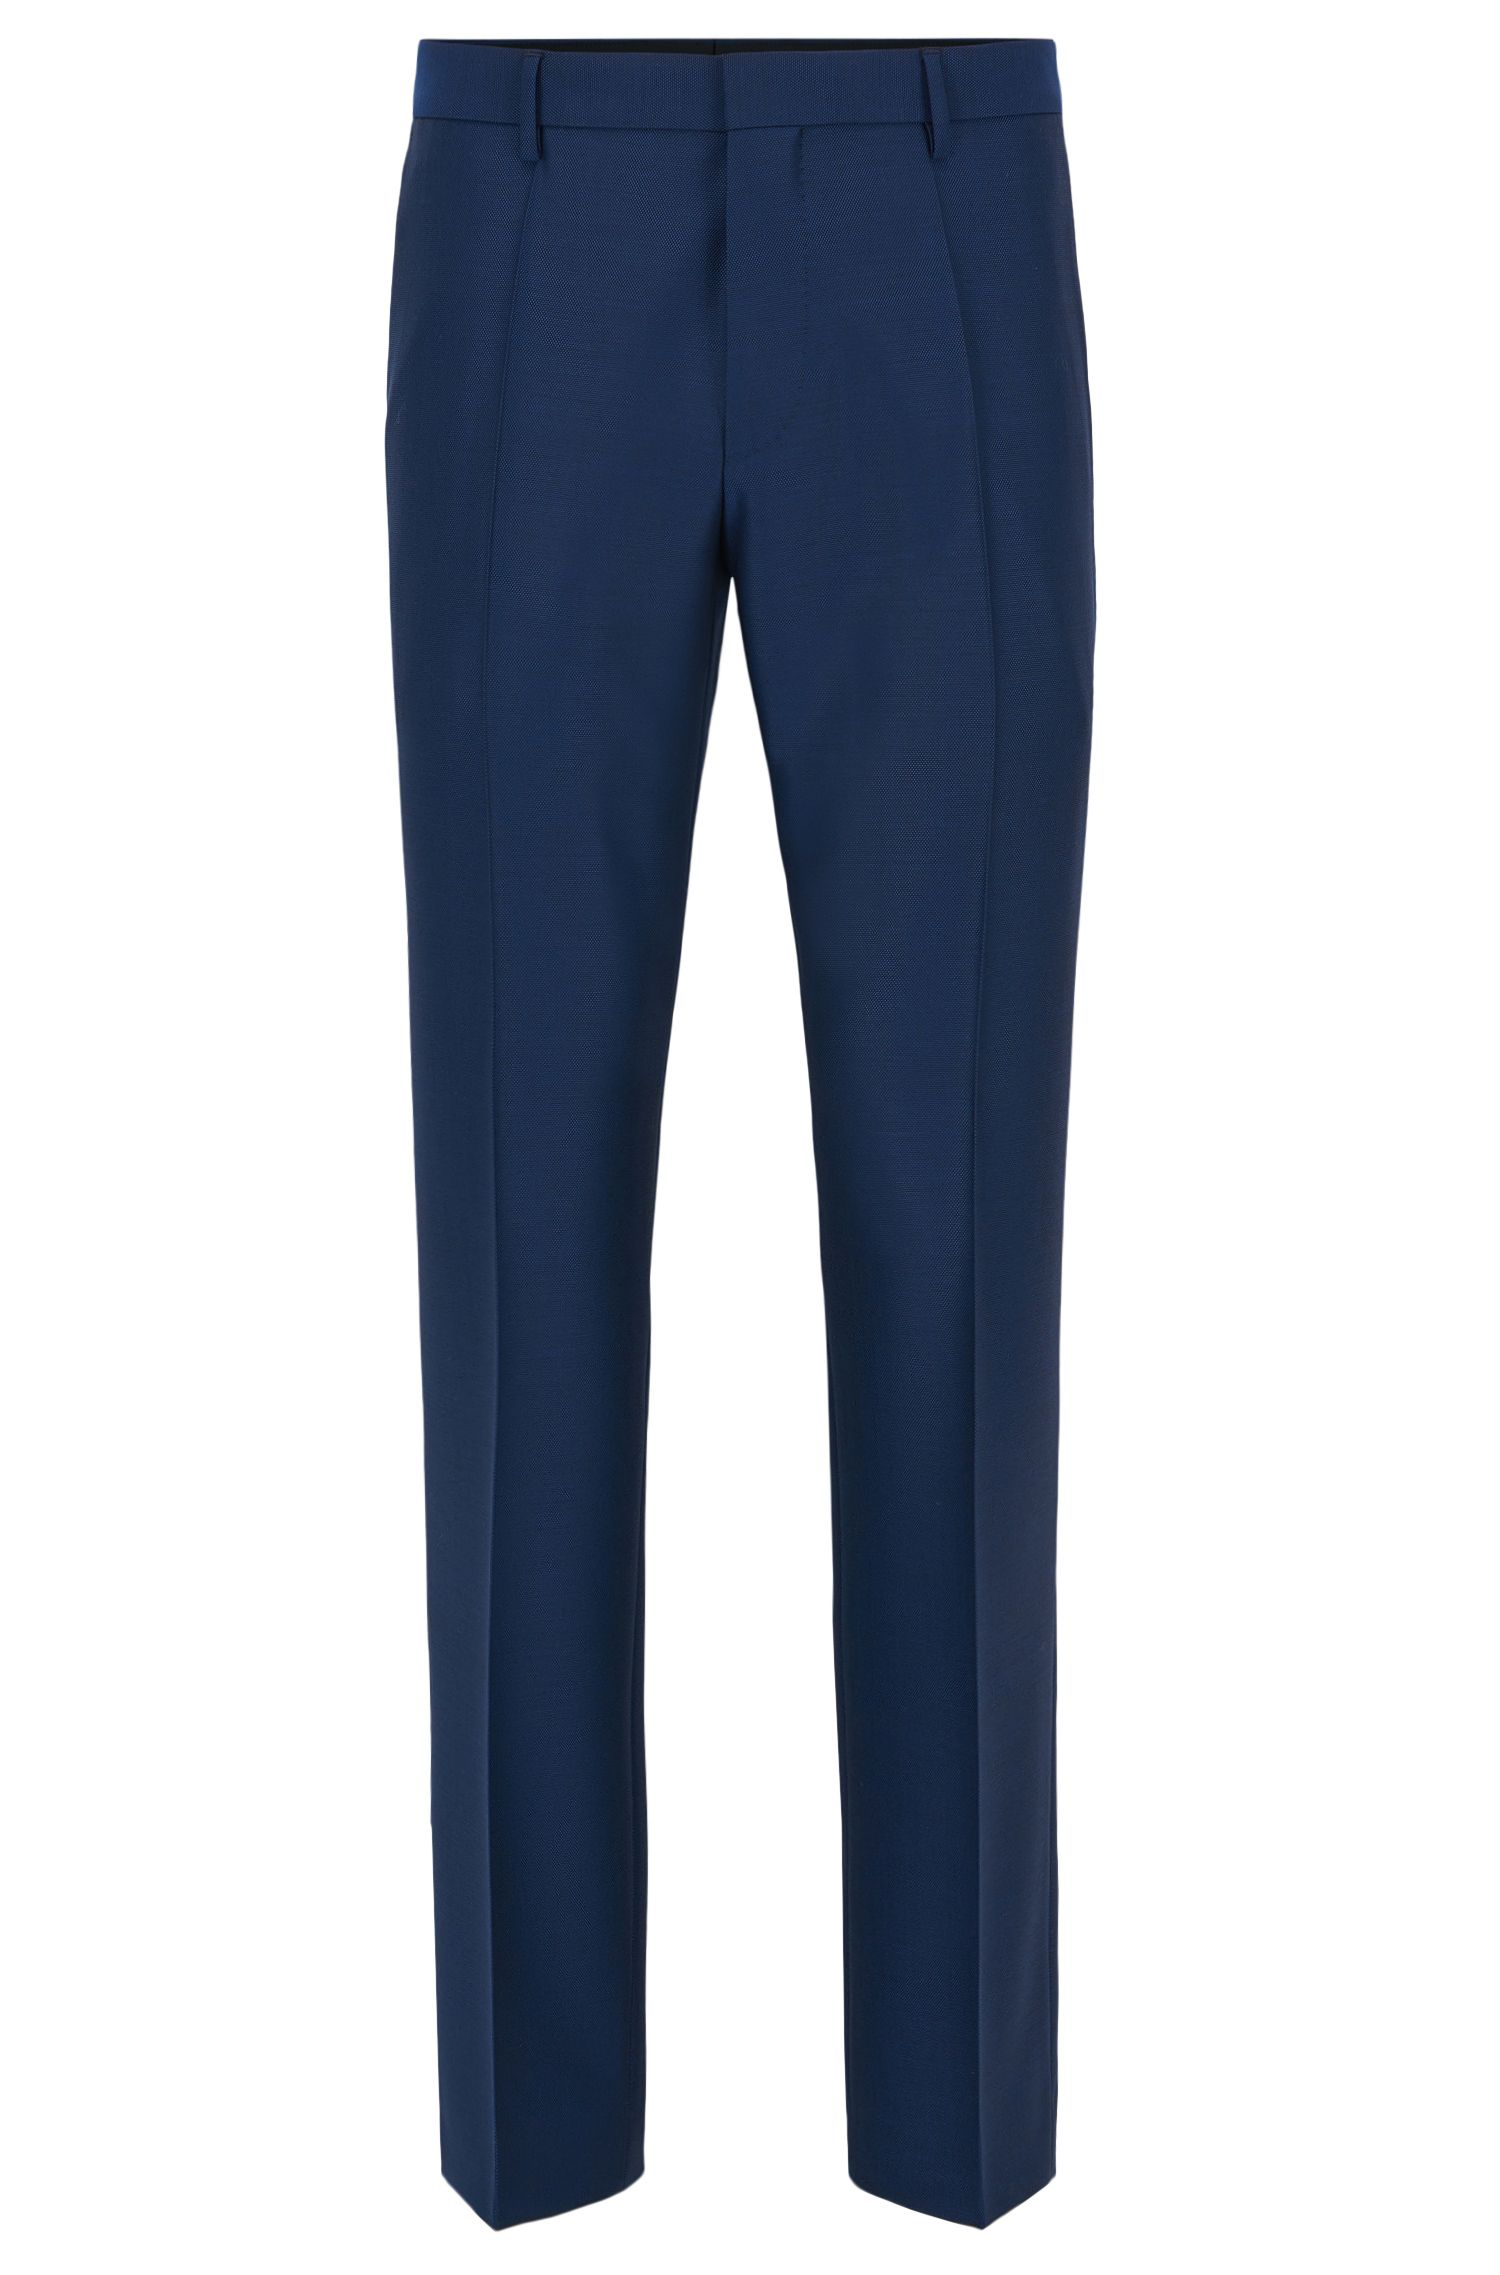 Virgin Wool Pant, Slim Fit | Genesis